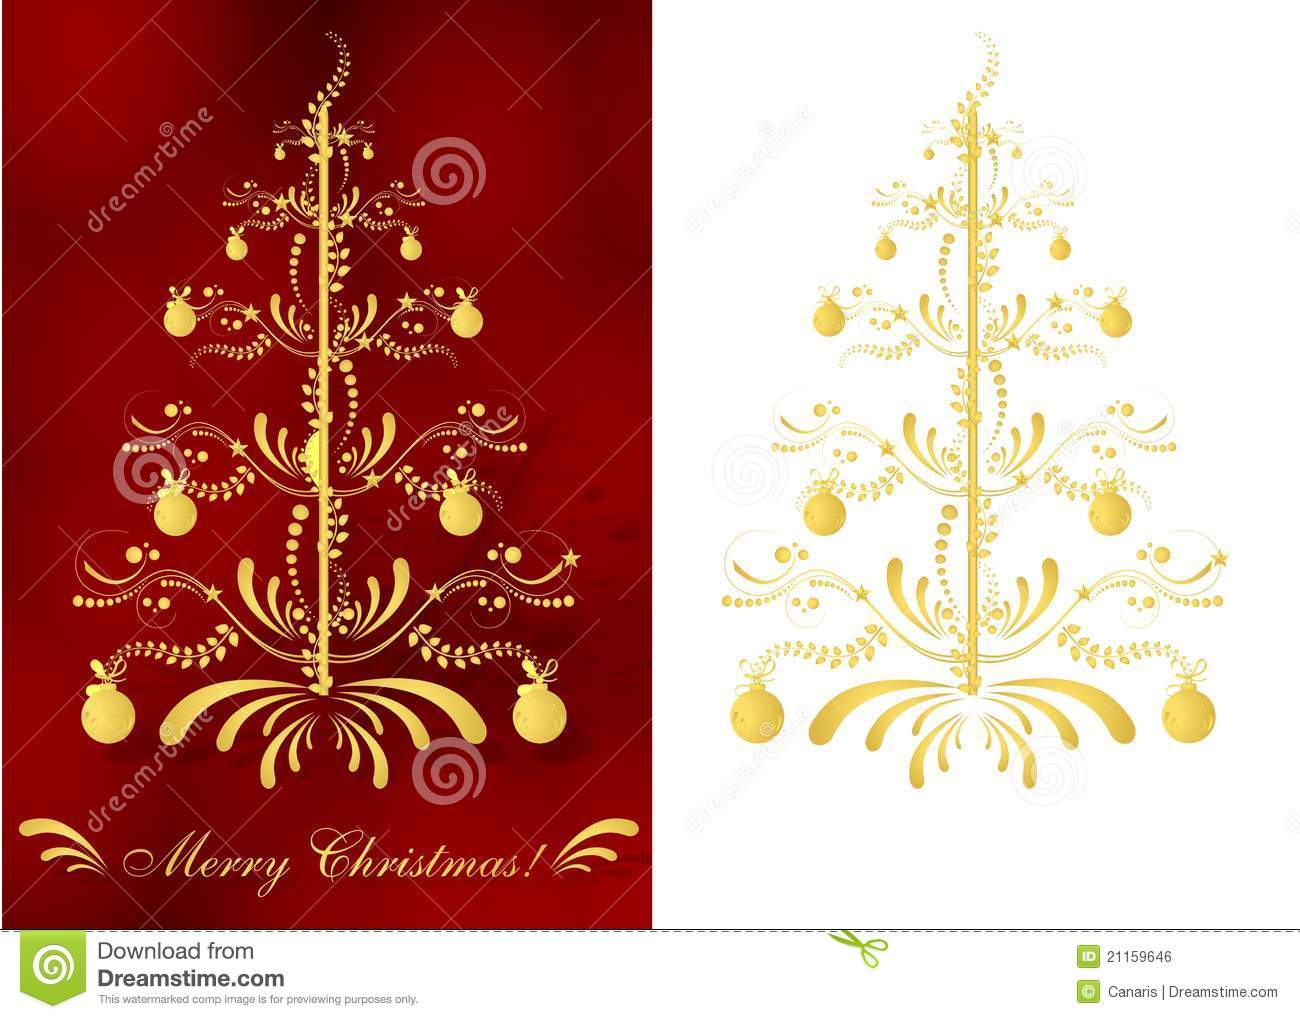 Set of two christmas greeting cards with abstract golden christmas